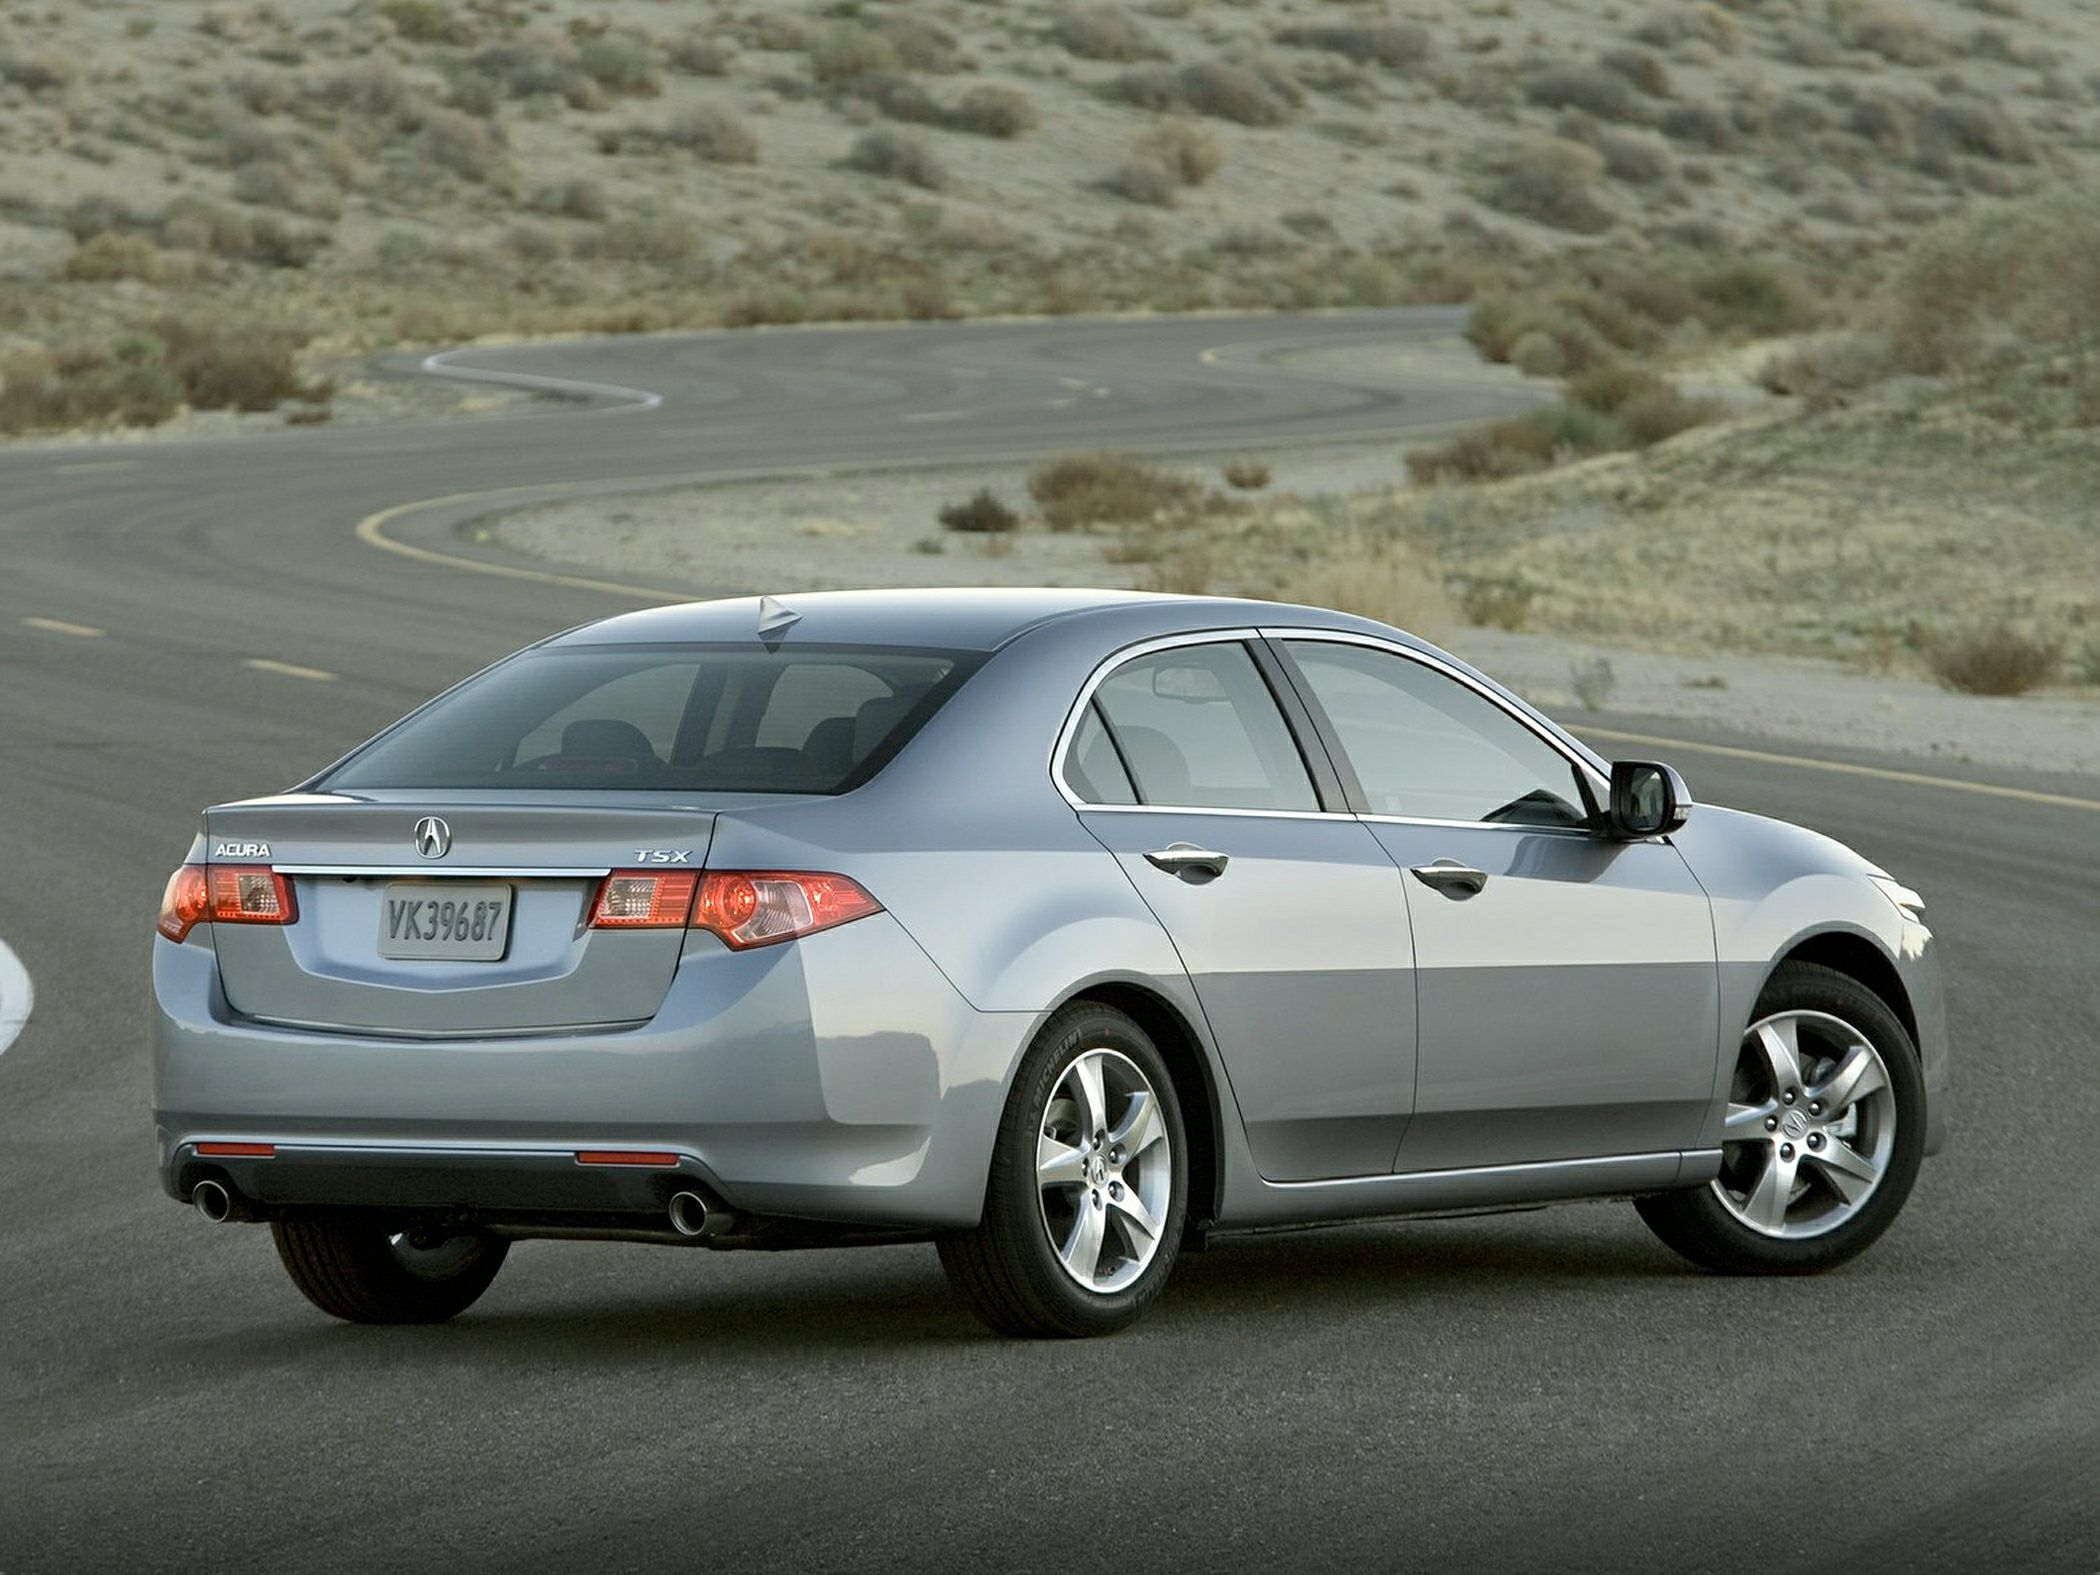 2014 Acura TSX Review Wallpapers For Desktop http